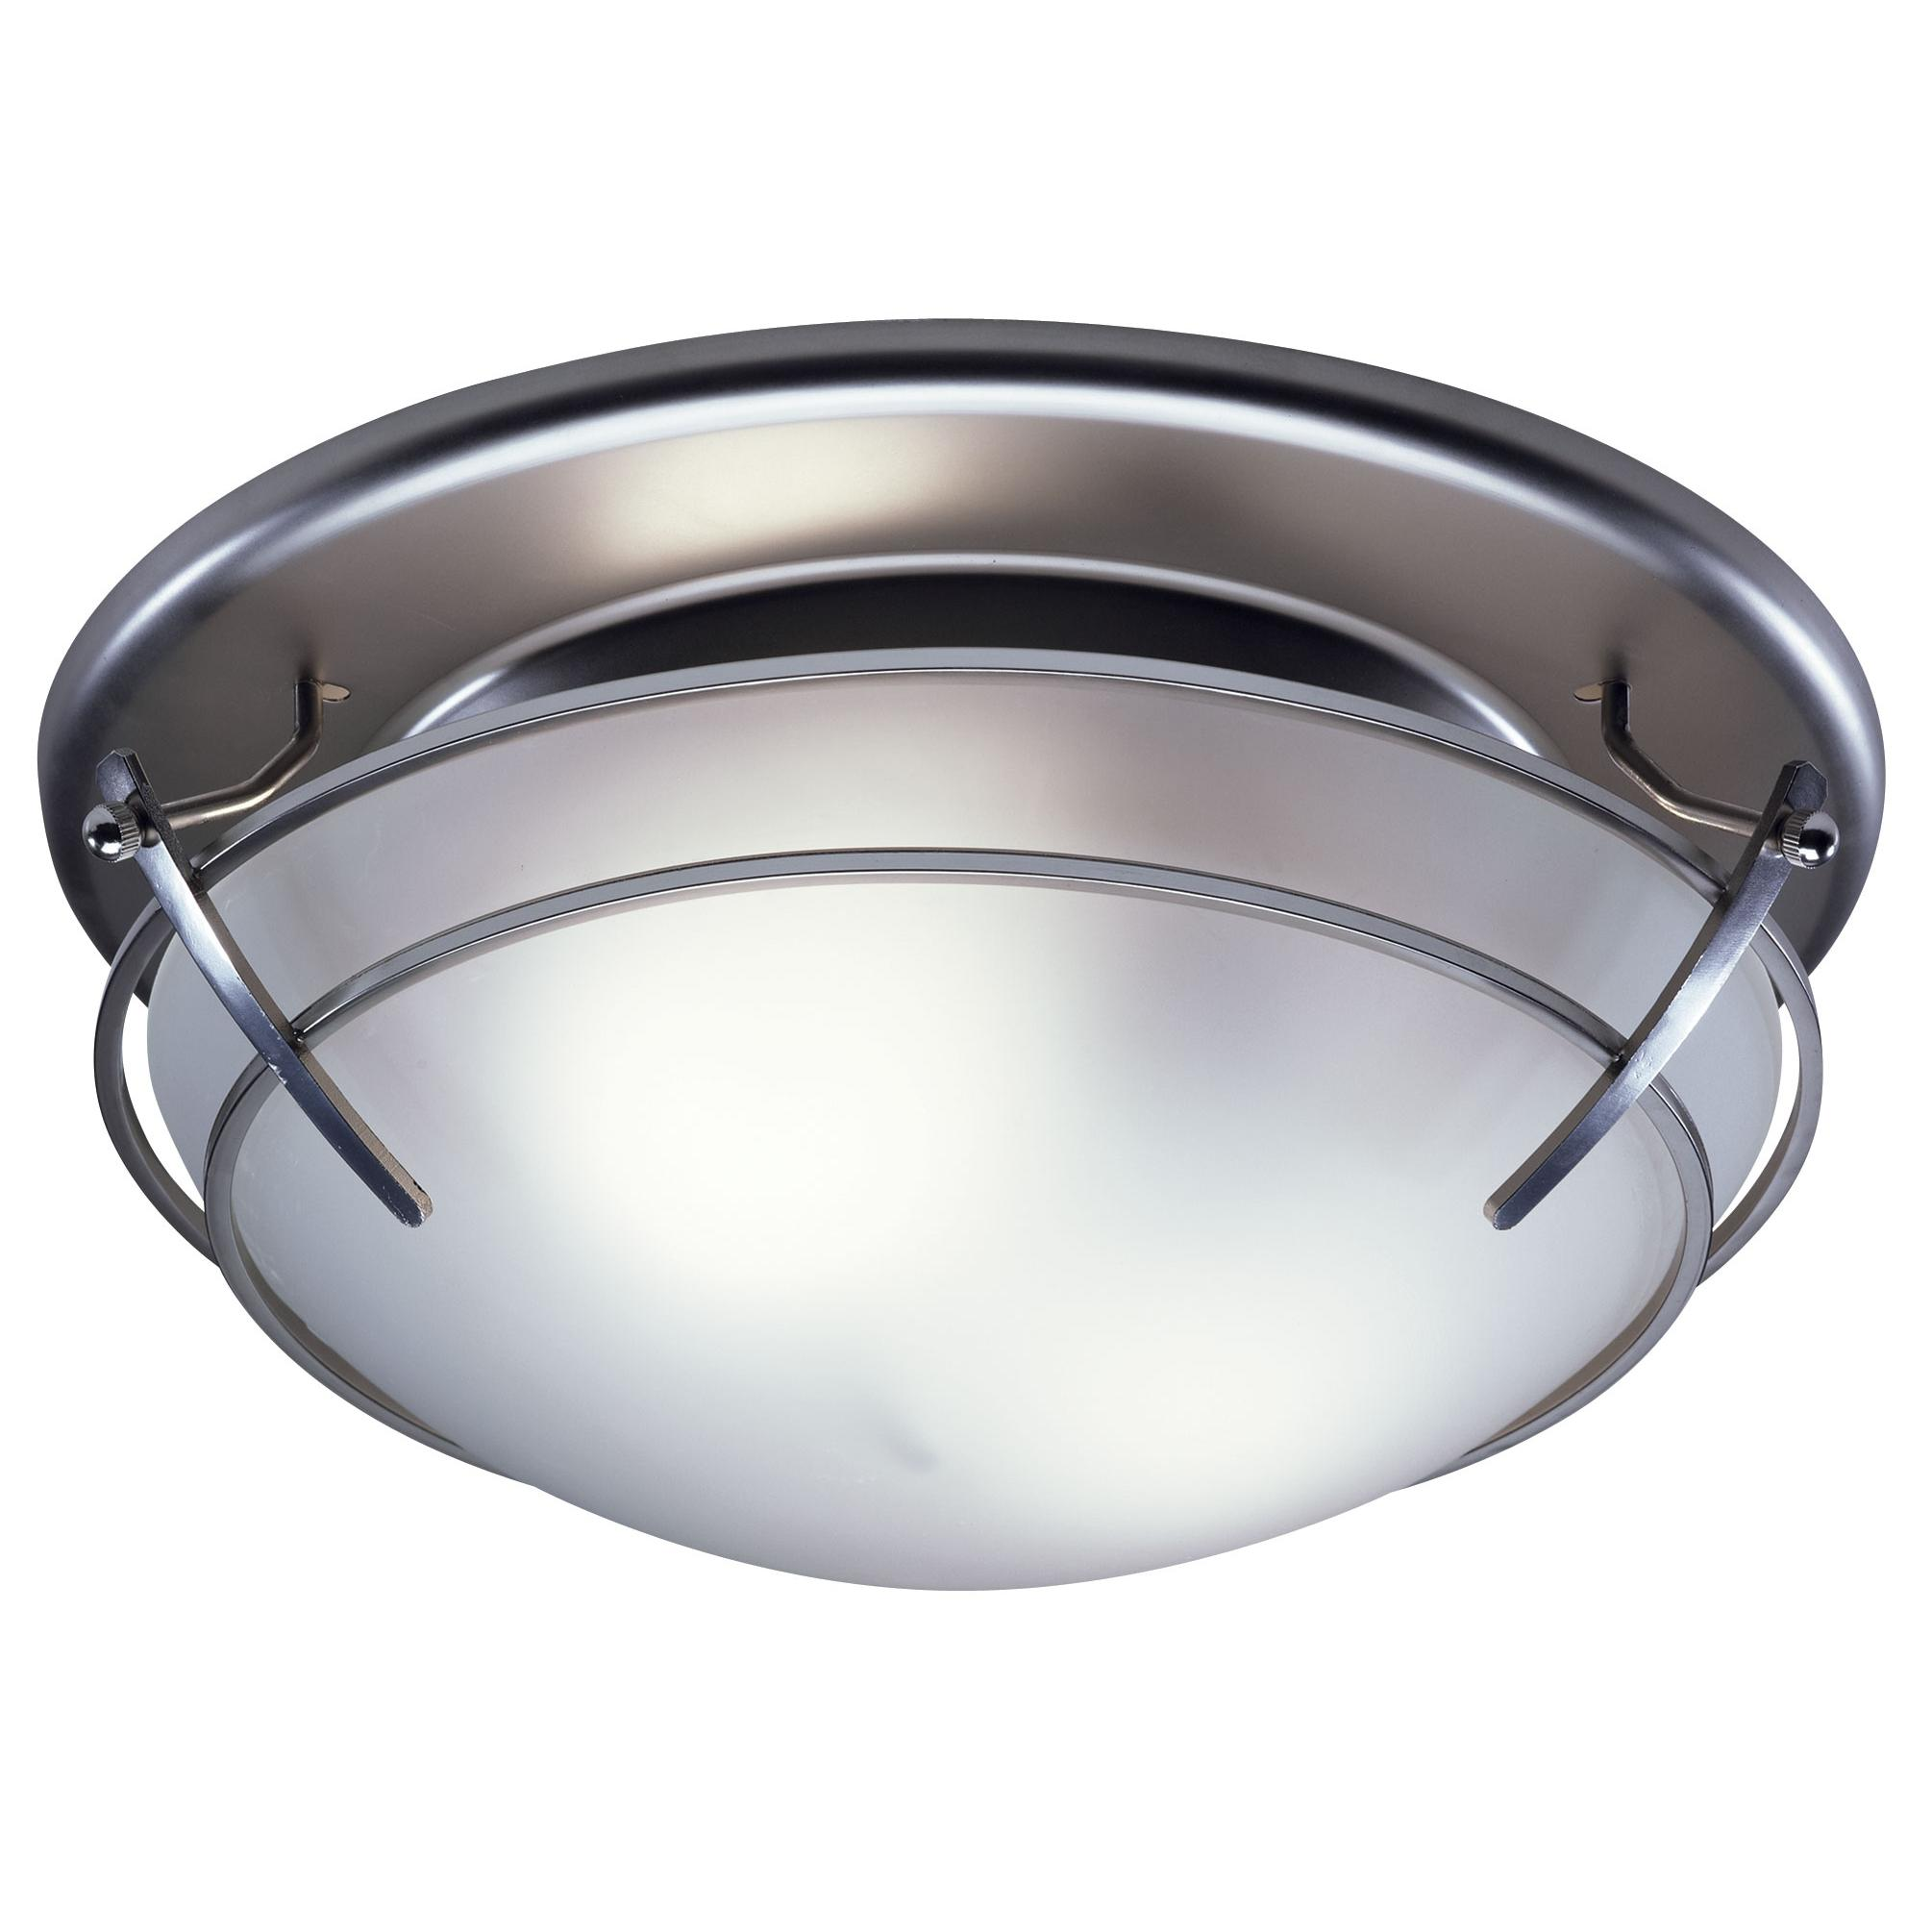 Broan 757sn decorative ventilation fan and light 80 cfm 25 sones broan 757sn decorative fanlight with glass globe 80 cfm satin nickel aloadofball Choice Image